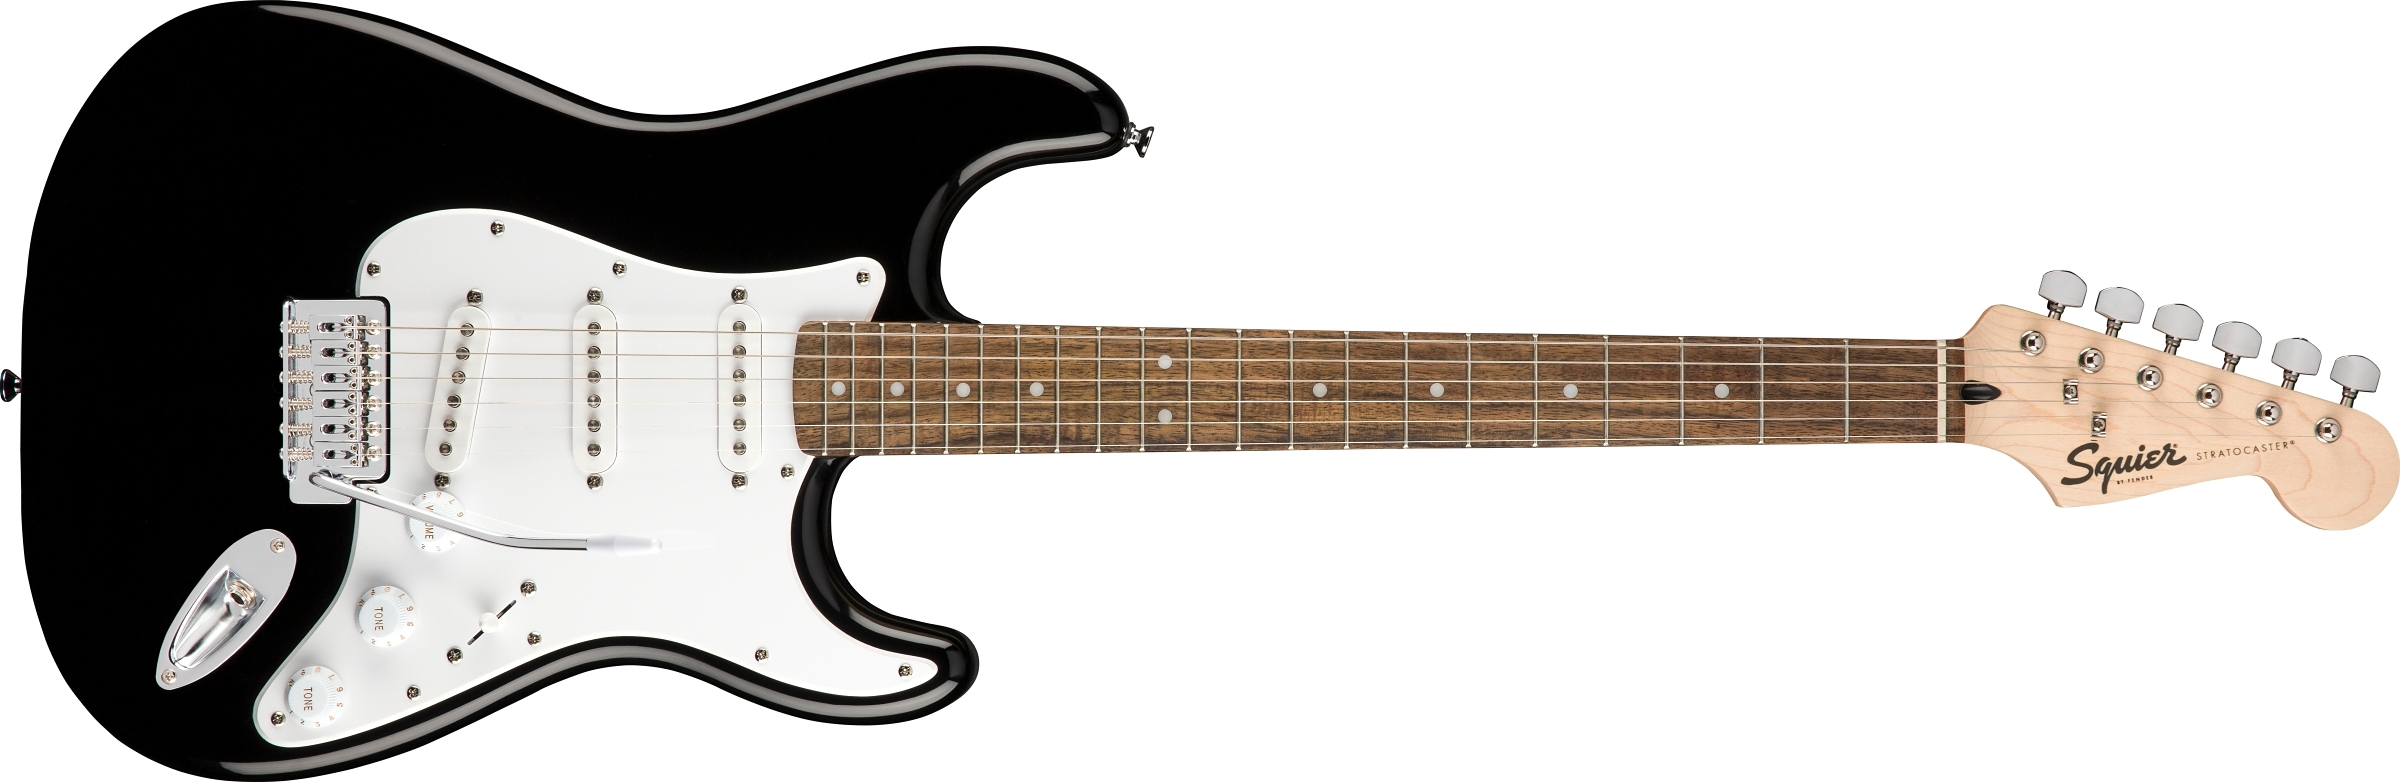 squier stratocaster pack squier electric guitars. Black Bedroom Furniture Sets. Home Design Ideas